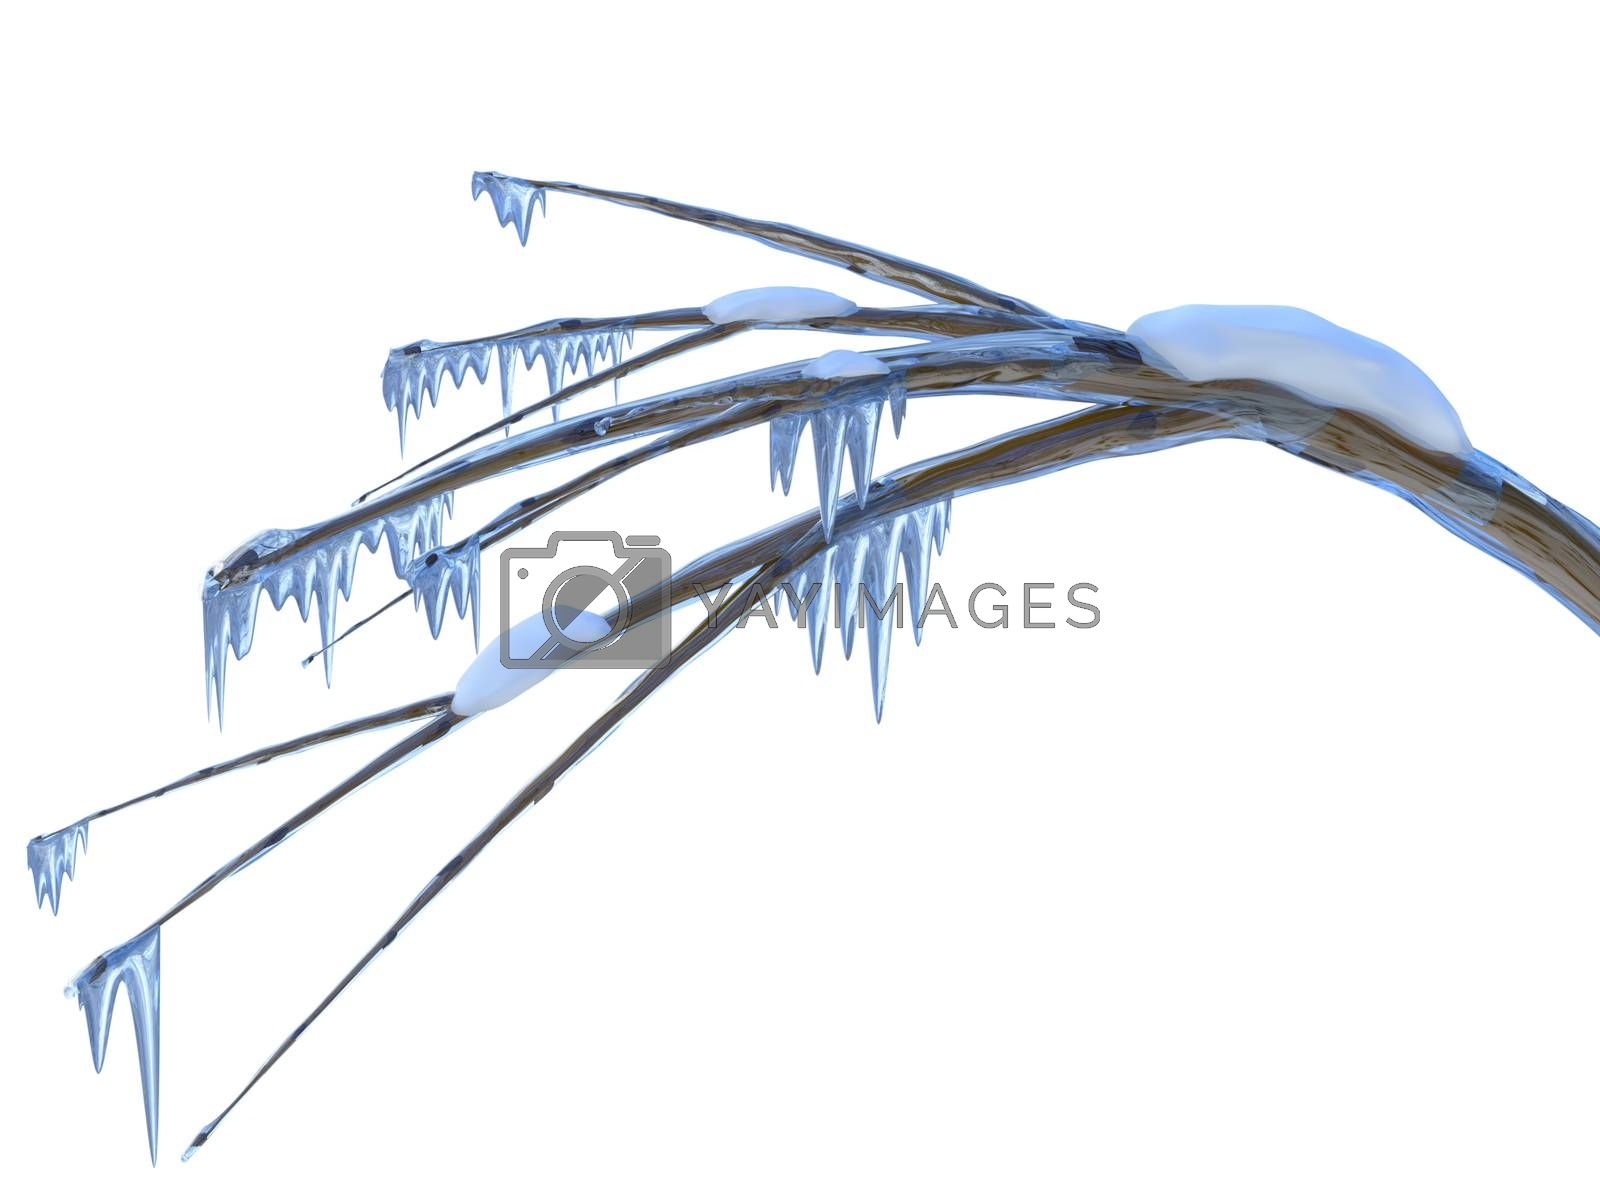 Frozen branch of a tree with icicles and snow in icy winter season time